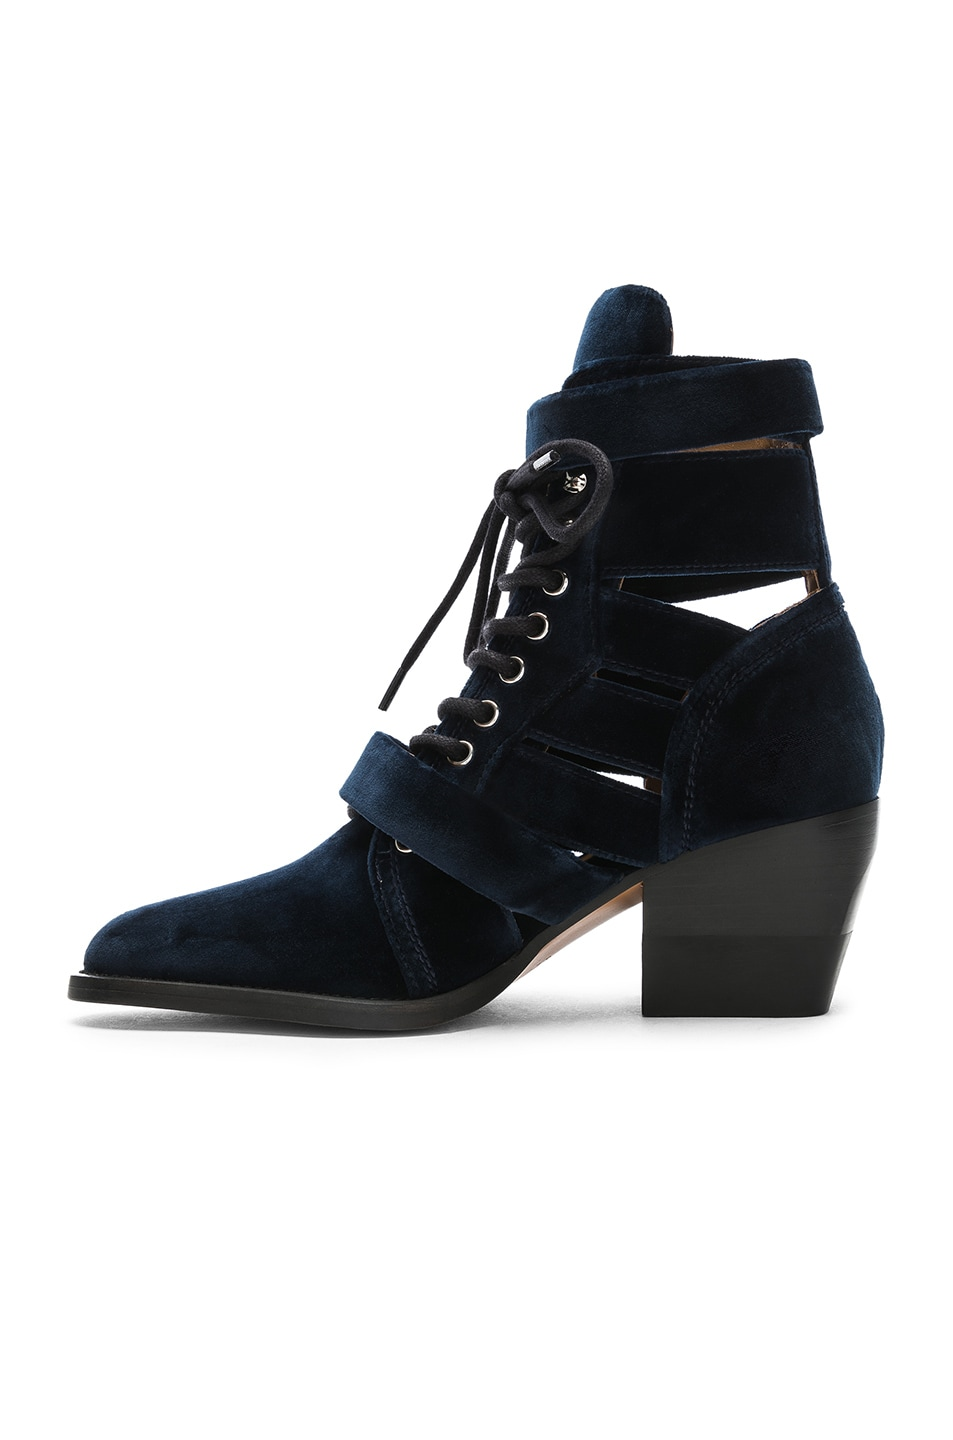 Image 5 of Chloe Rylee Velvet Lace Up Buckle Boots in Blue Lagoon